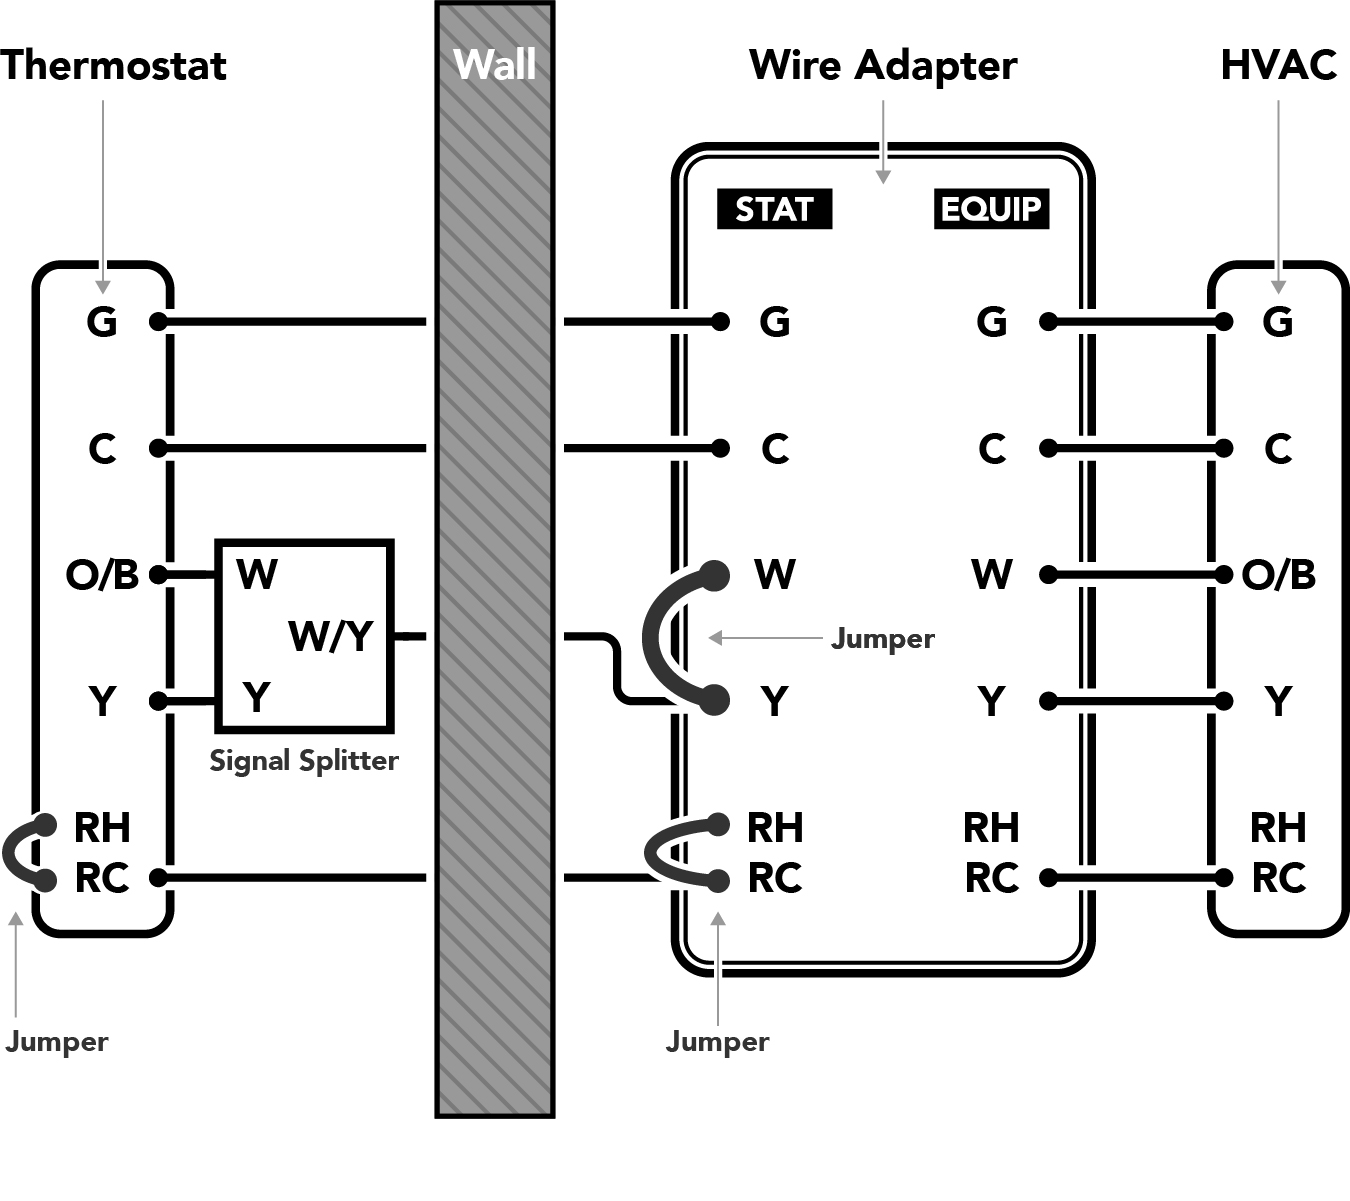 hight resolution of diagram 05 conventional heat pump system 2015 11 18 v1 conventional heat and